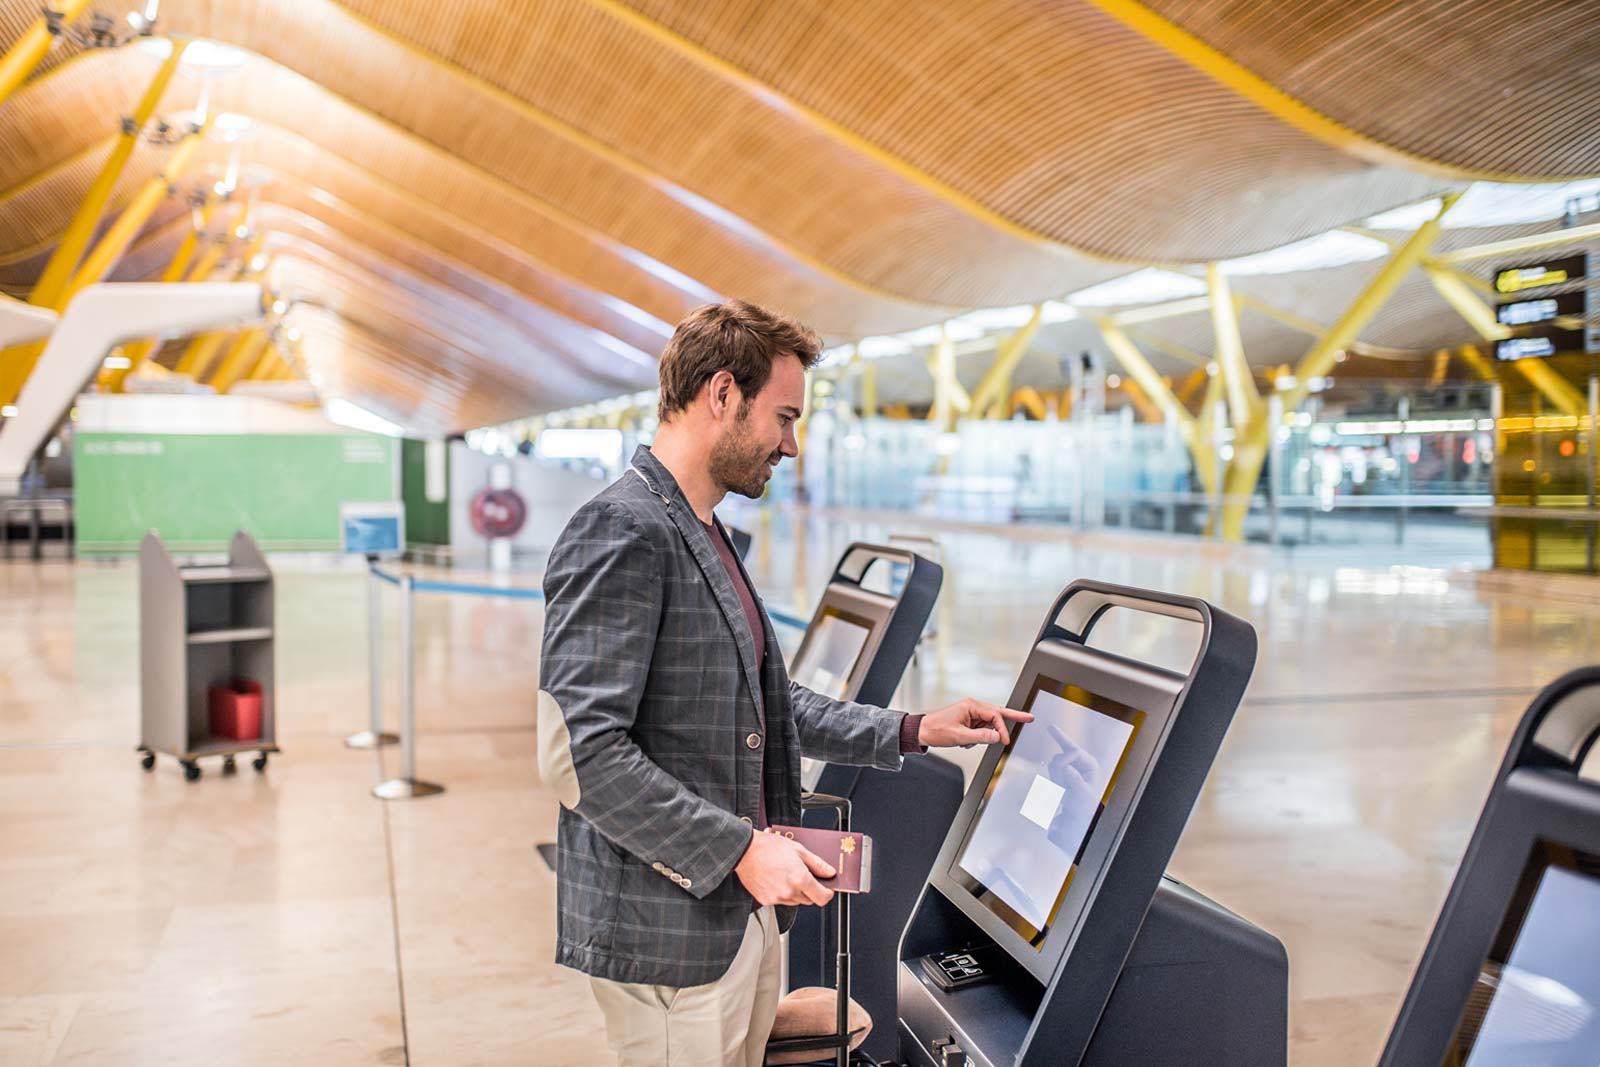 Happy man using the check-in machine at the airport getting the boarding pass